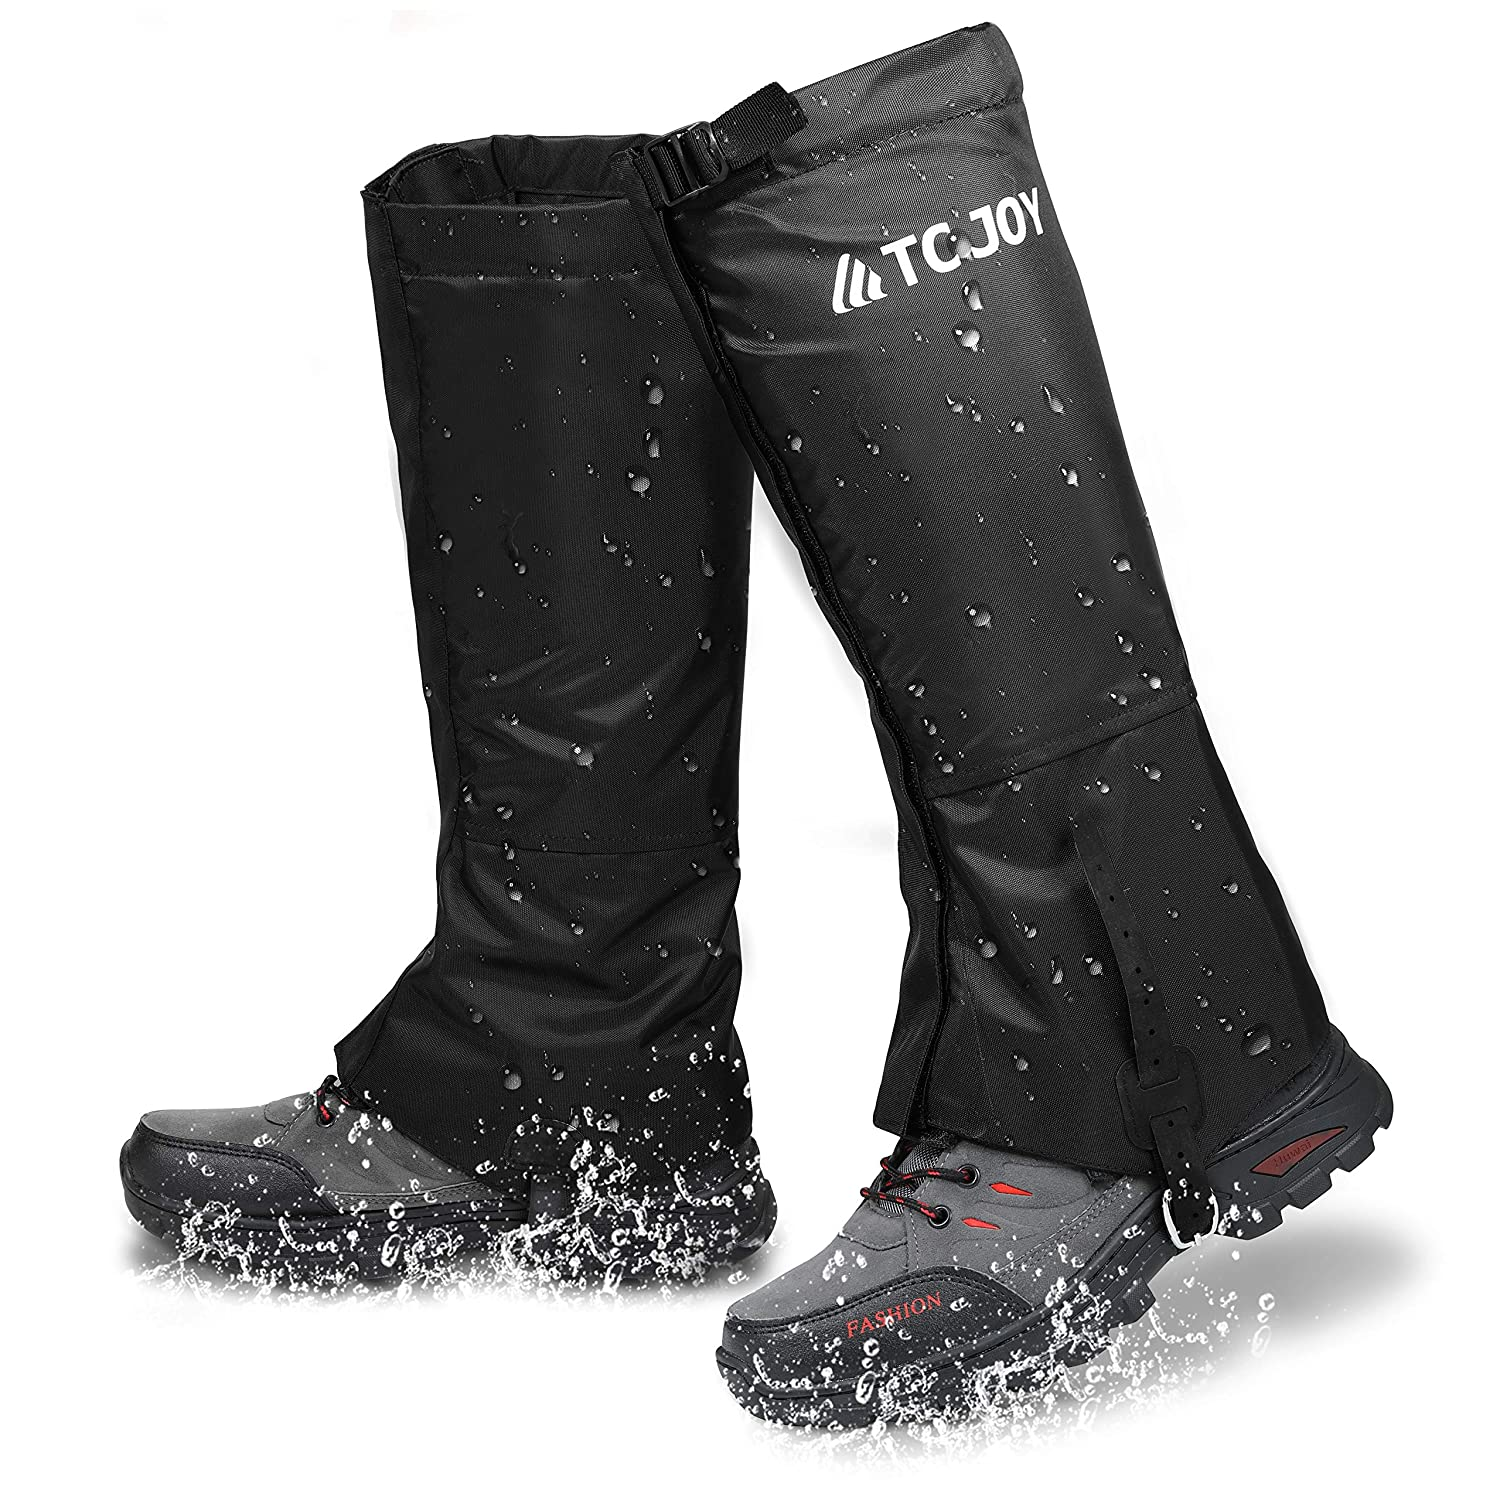 TC JOY Waterproof Leg Gaiters, Outdoor Snow Boot Gaiters for Hiking Walking Running, Anti-Tear 900D Oxford Fabric Hunting Gaiters for Man Woman, M L XL